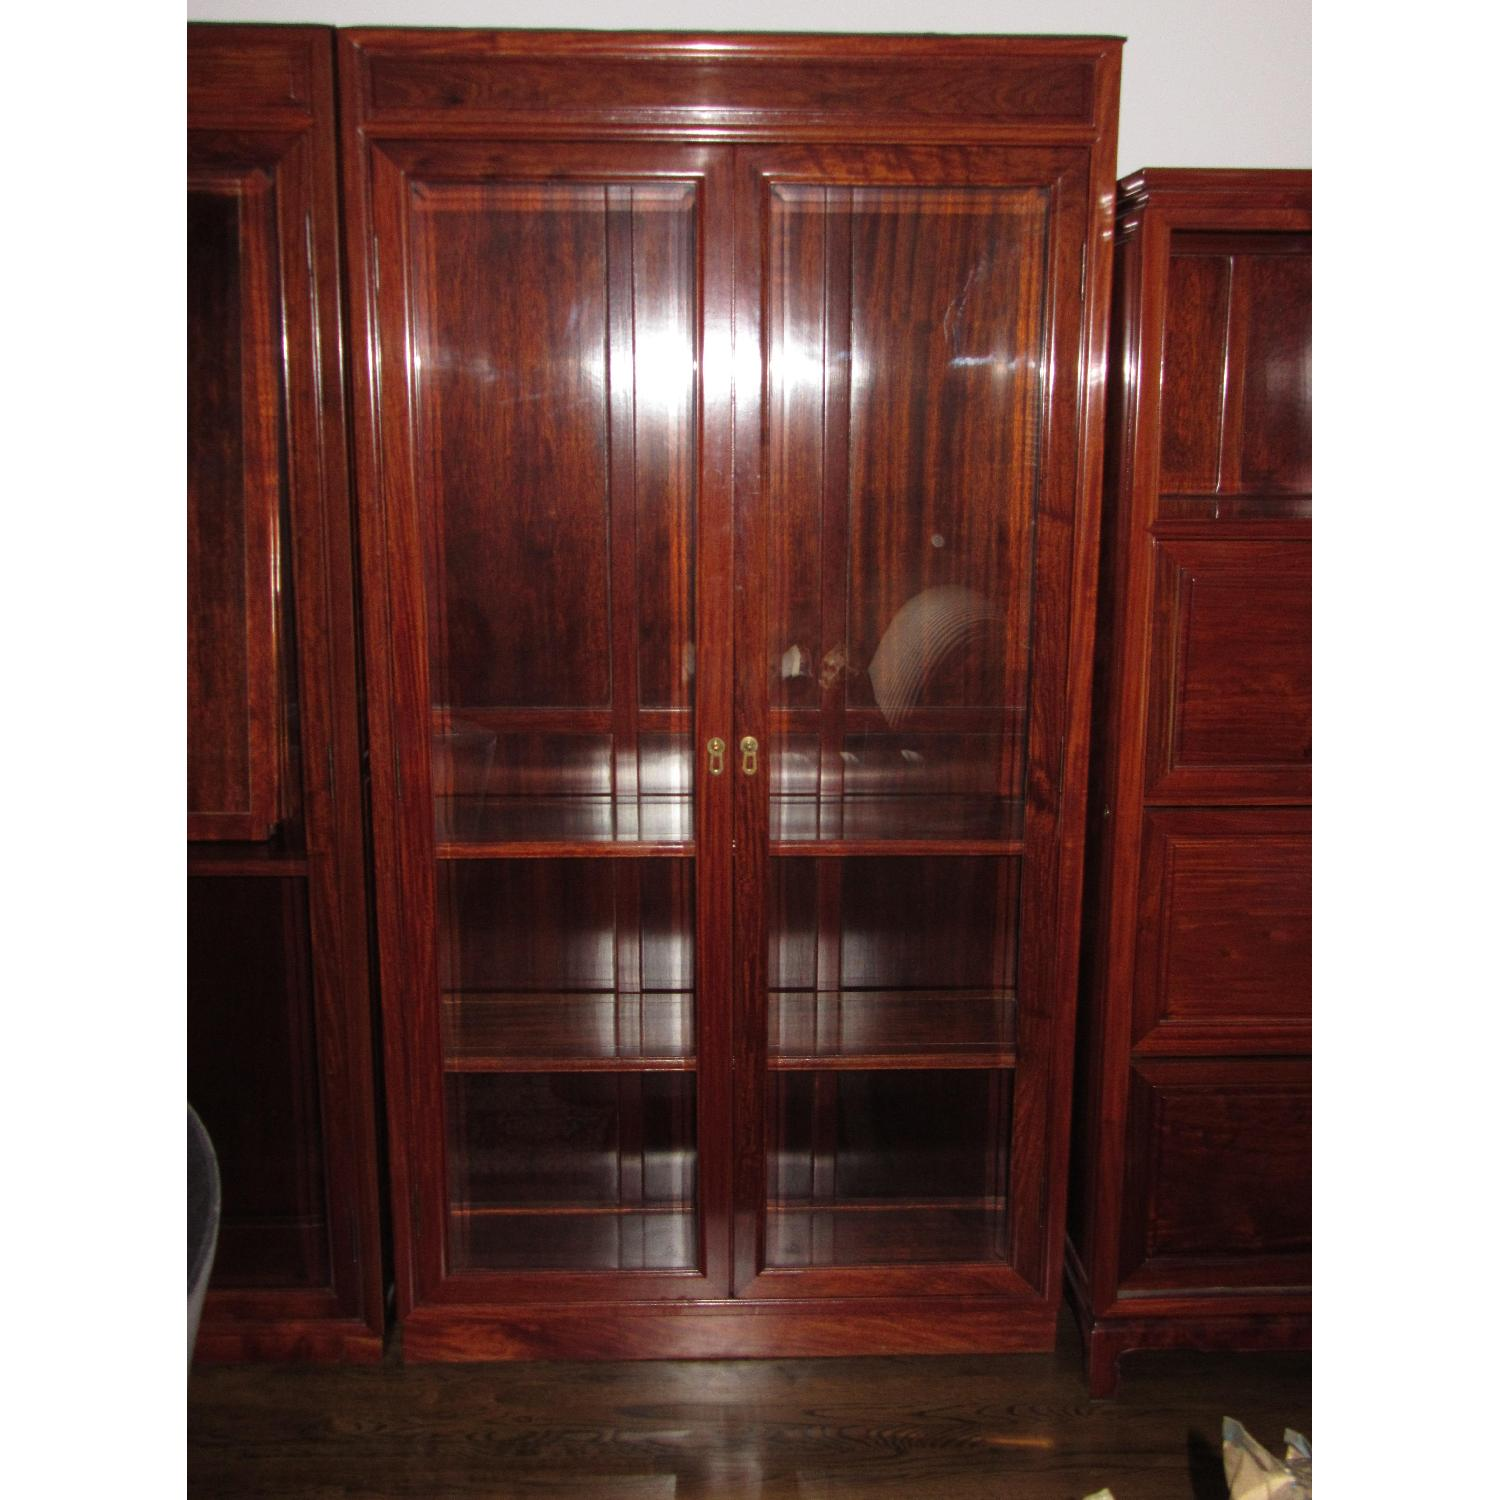 Rosewood Elm Glass Door Cabinets - 2 Available - image-1